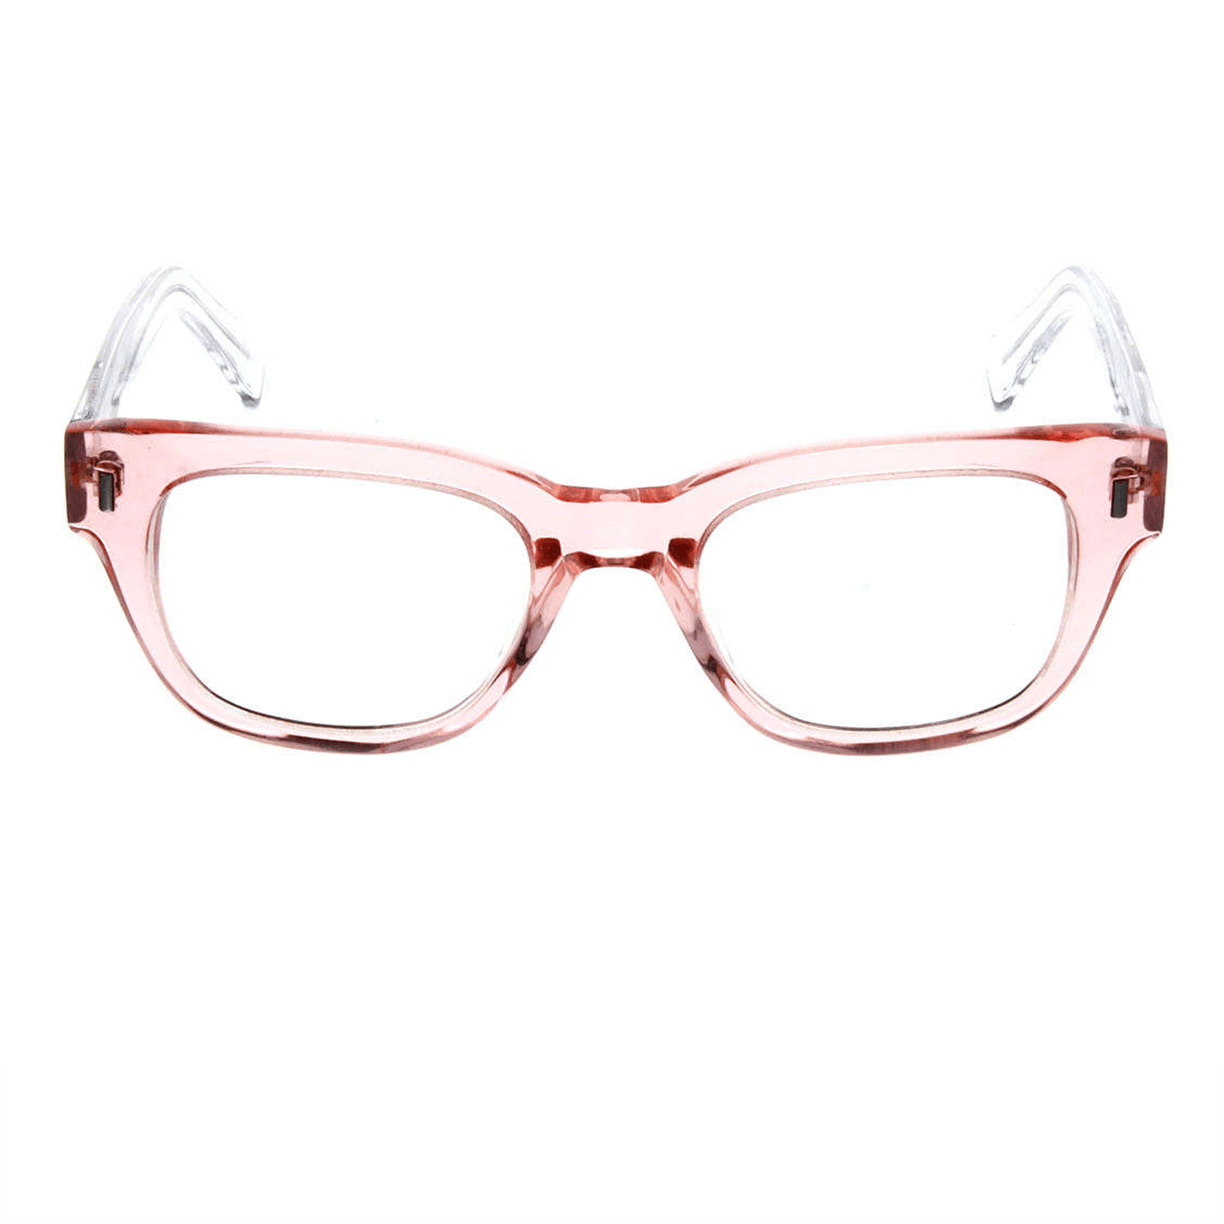 Eyeglasses Frame Trends 2015 : Eyewear Trends for the 2016 Spring/Summer Season